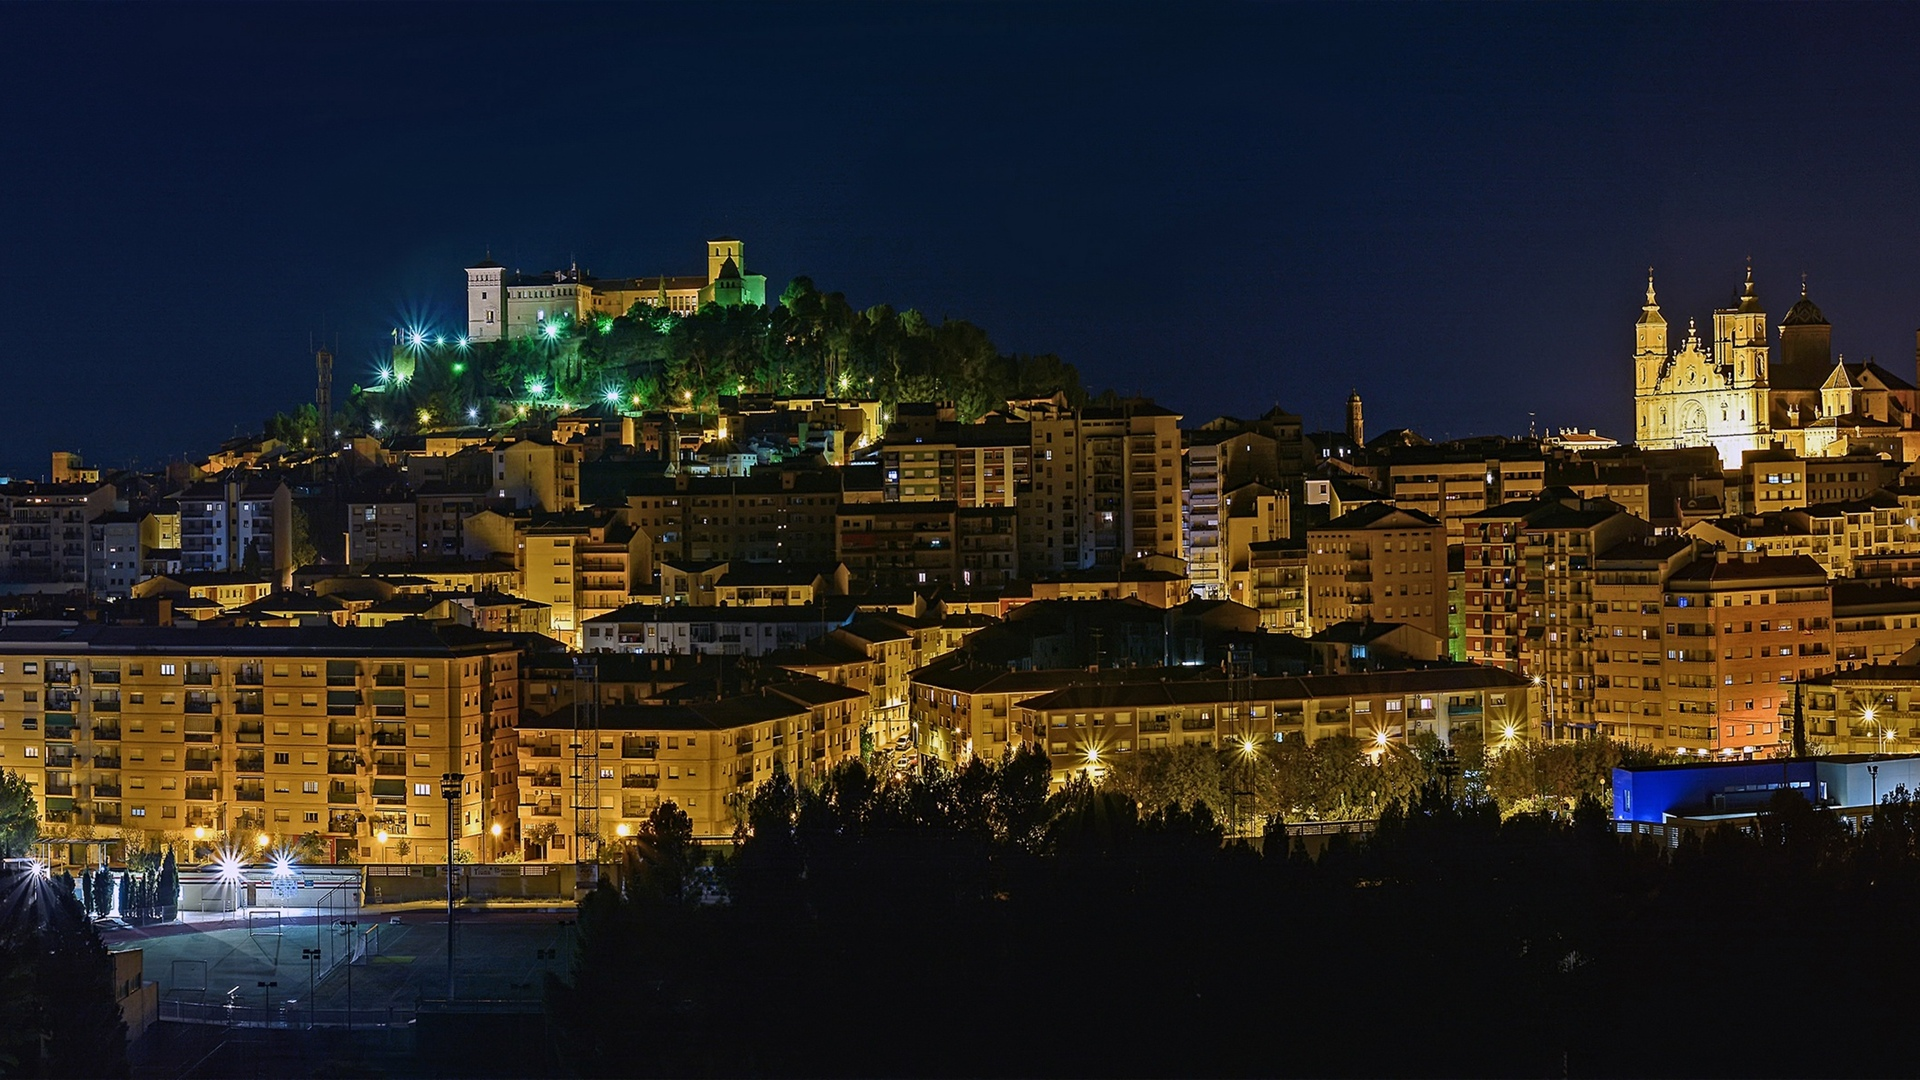 Spain, Aragon, lights, night, city, buildings 1920x1080 wallpaper